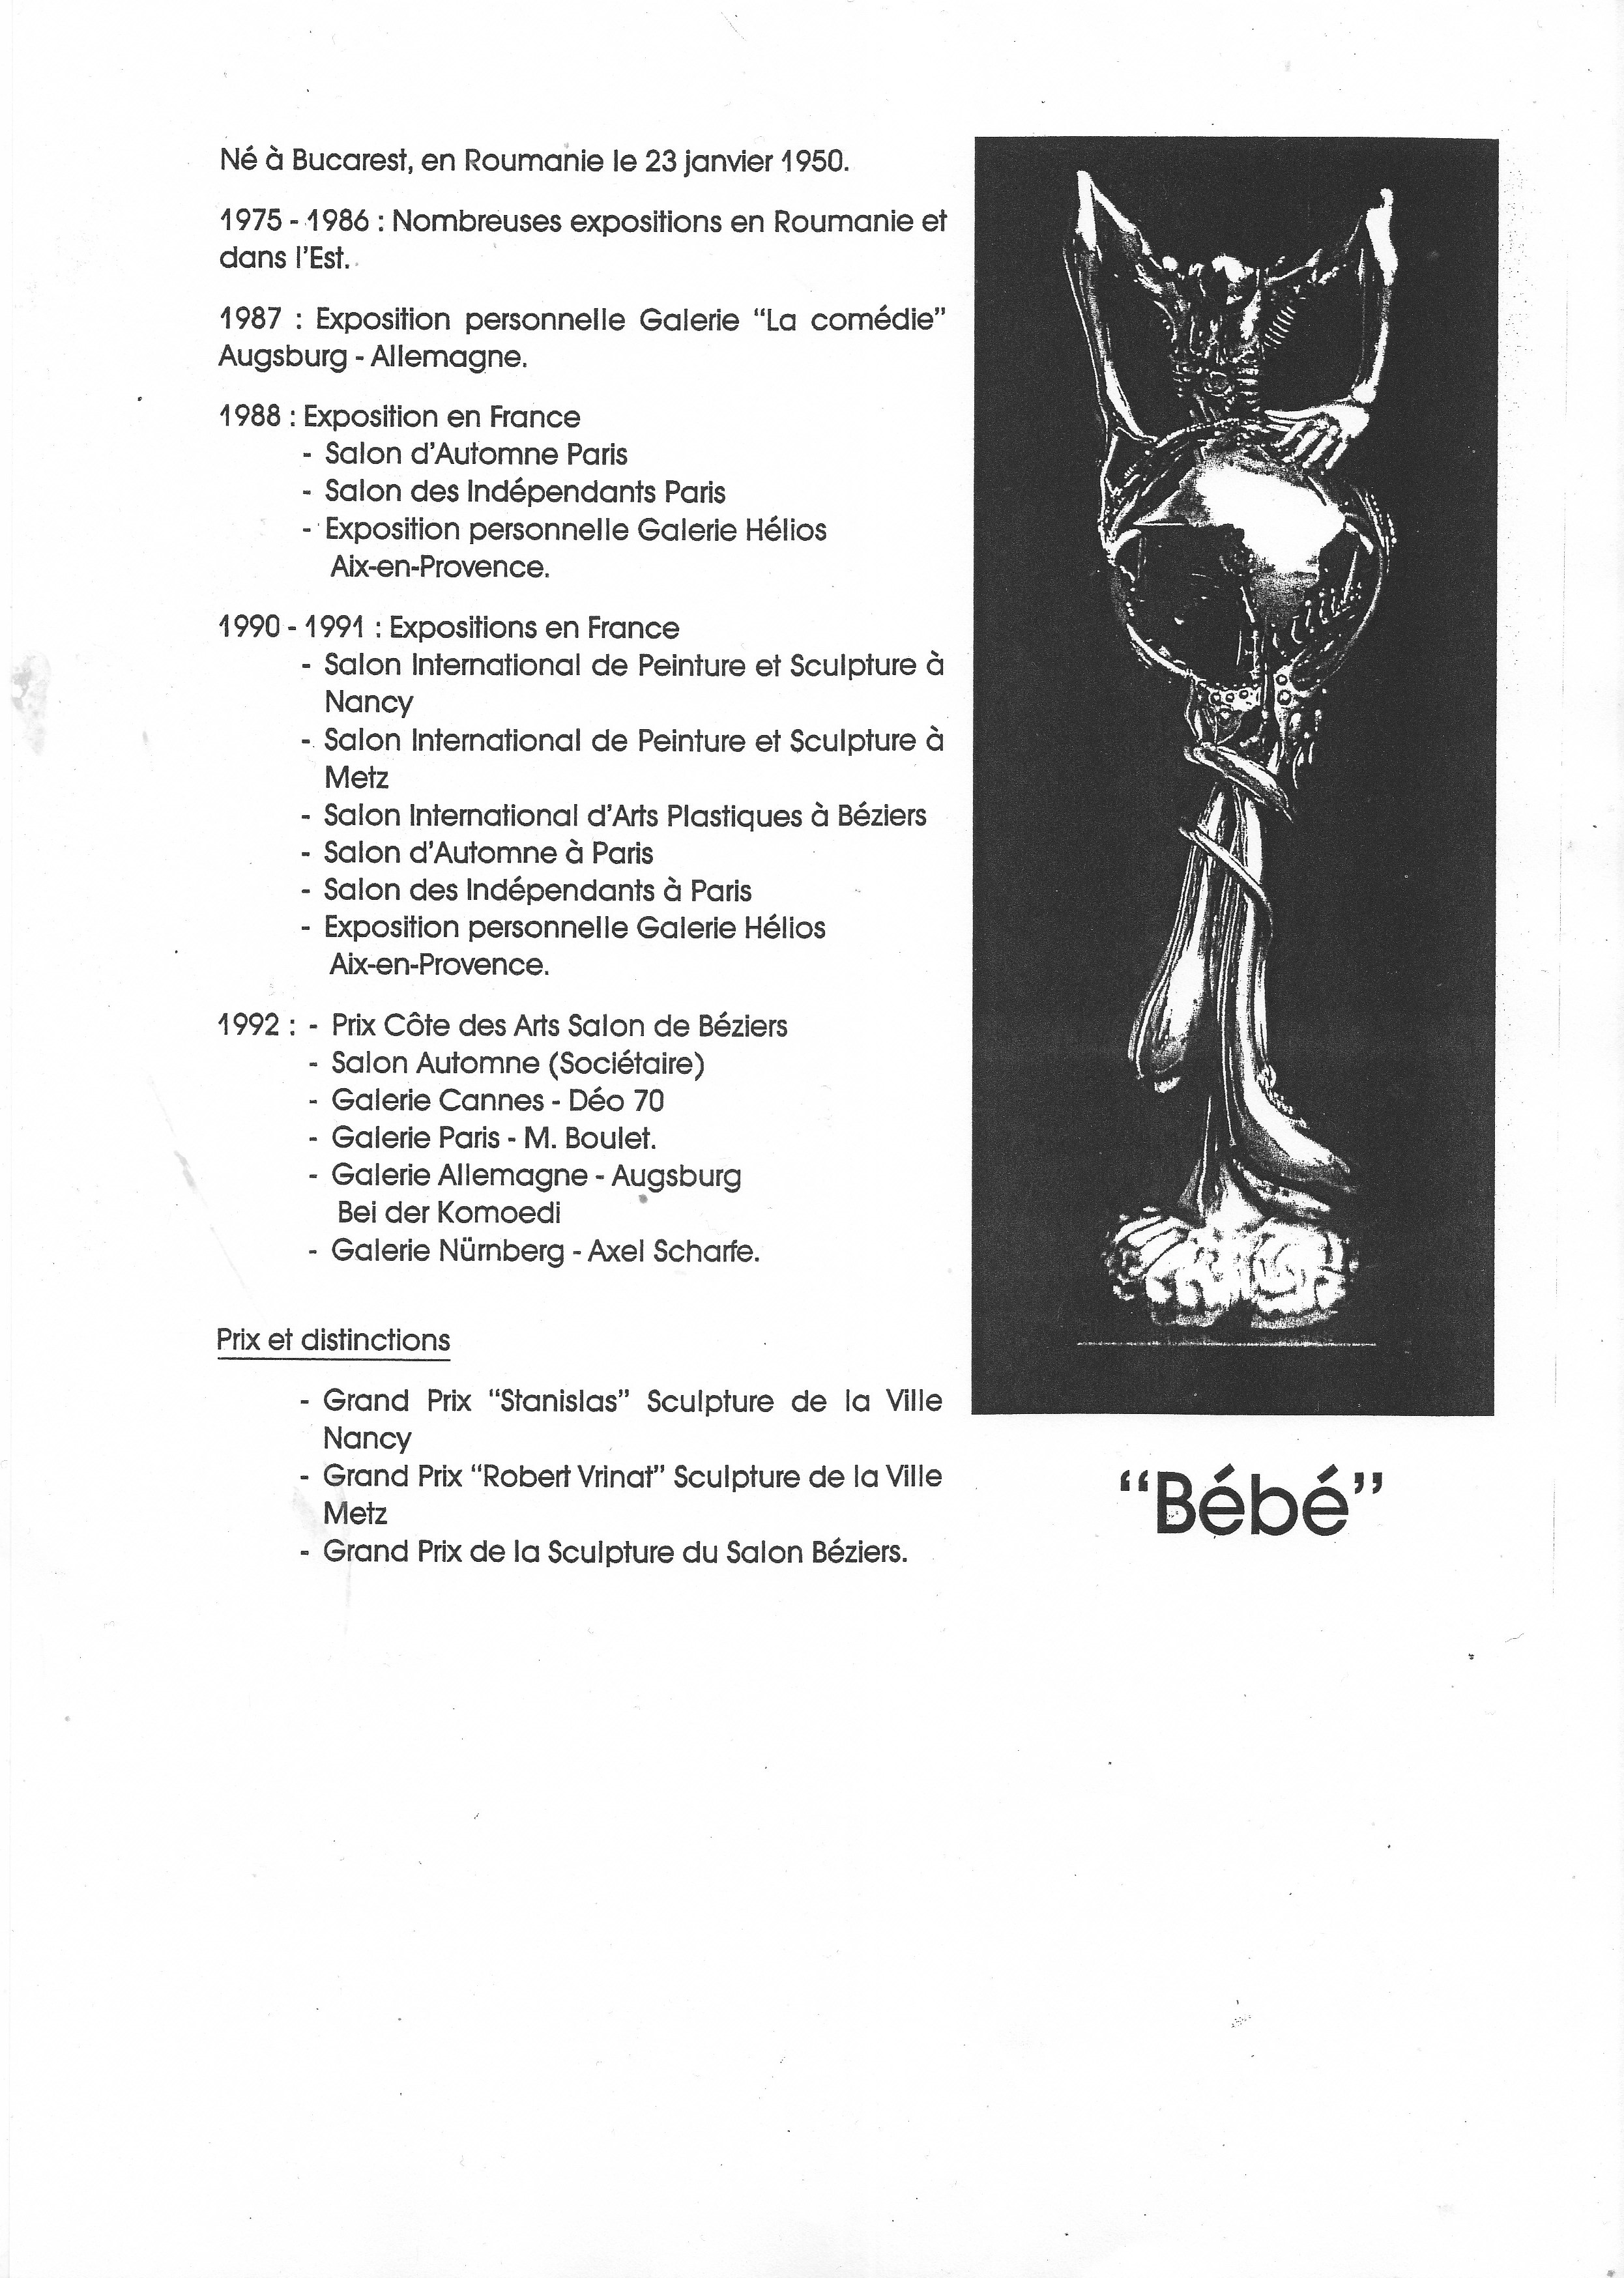 Cv Of Bébé Surrealist And Symbolic Bronze Sculptures